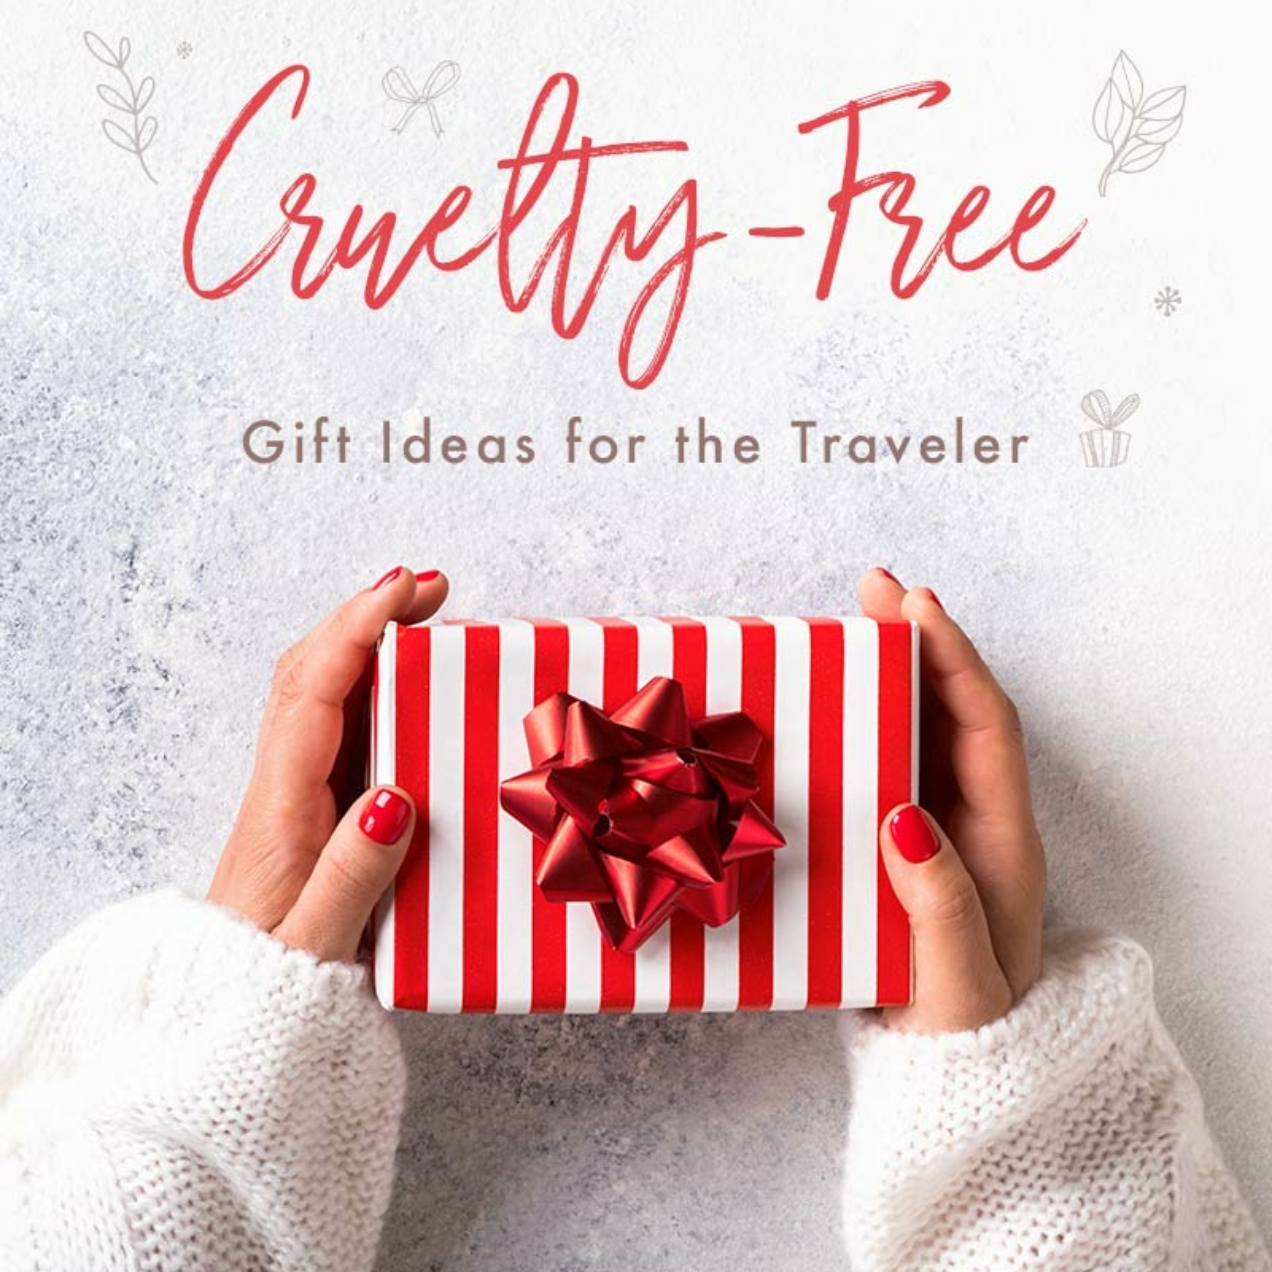 Cruelty-Free Gift Ideas for the Traveler